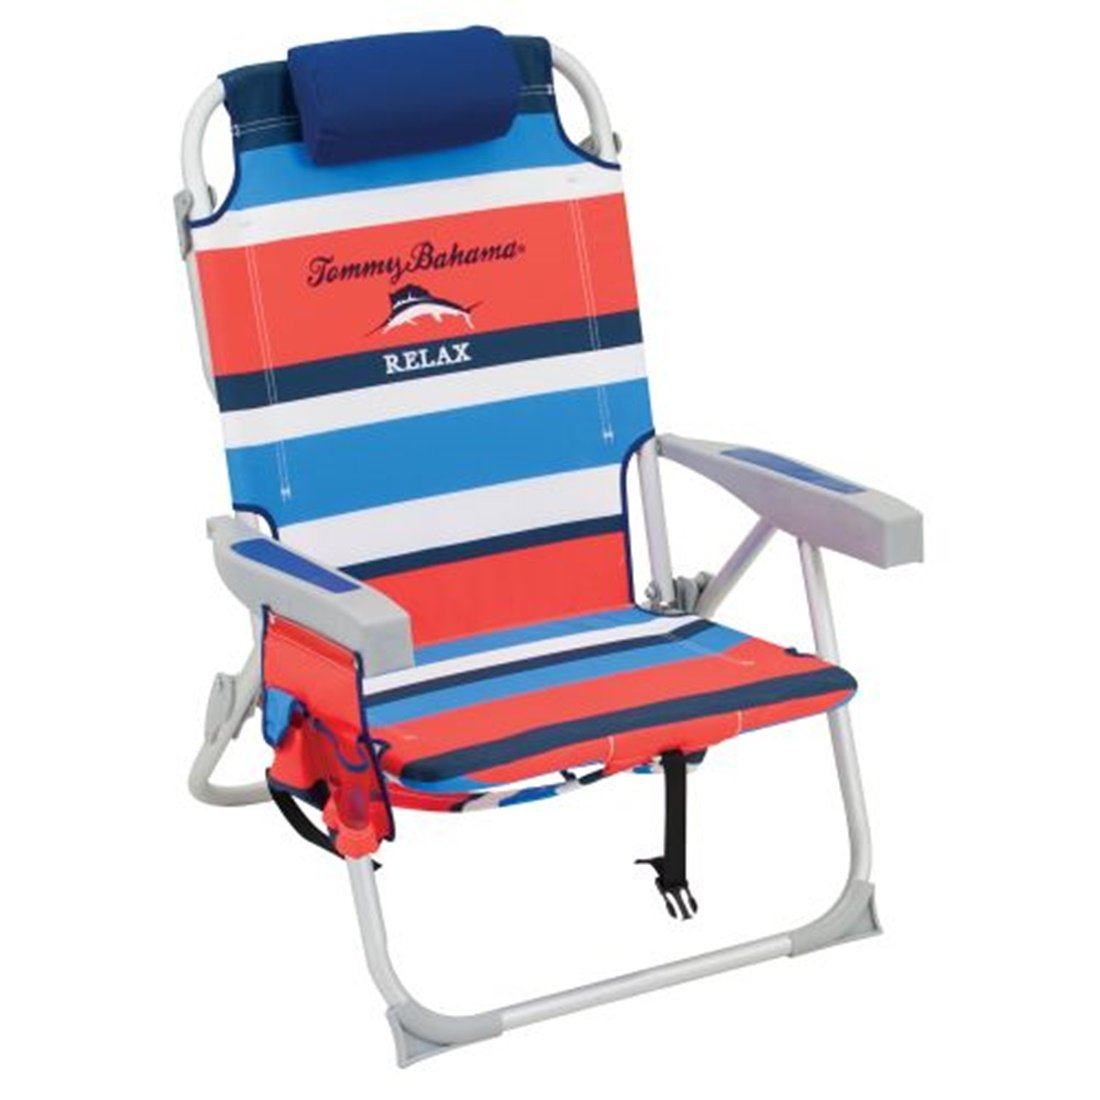 tommy bahama cooler chair caterpillar rocking 2016 backpack with storage pouch